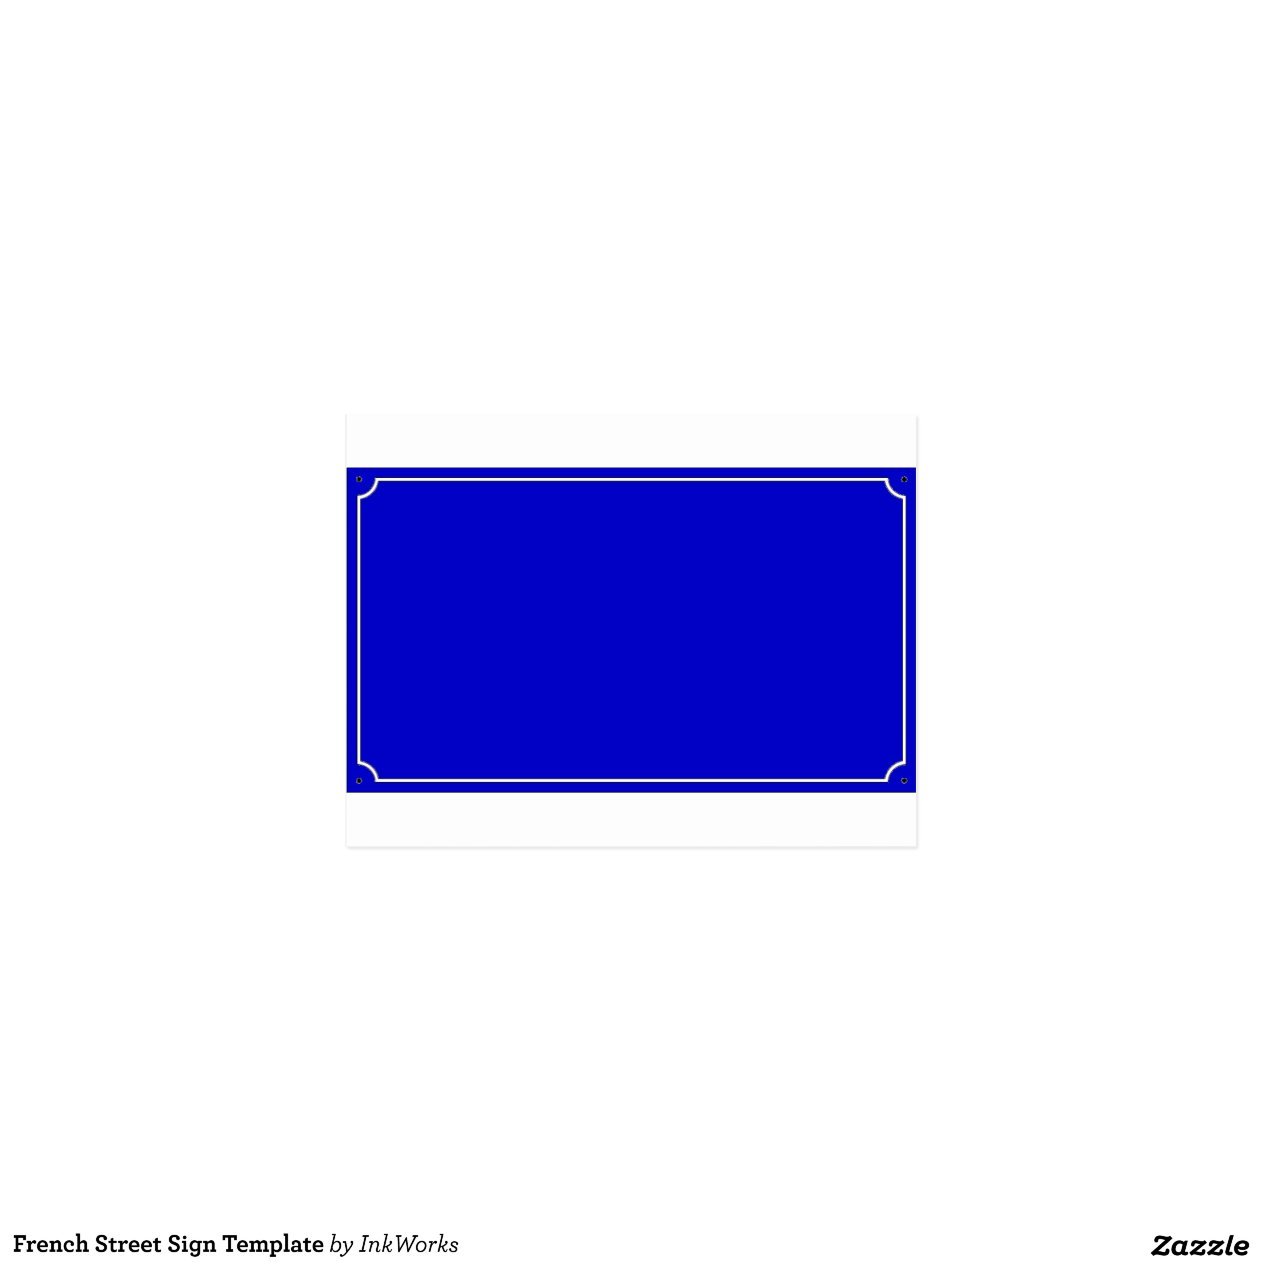 french street sign template zazzle. Black Bedroom Furniture Sets. Home Design Ideas